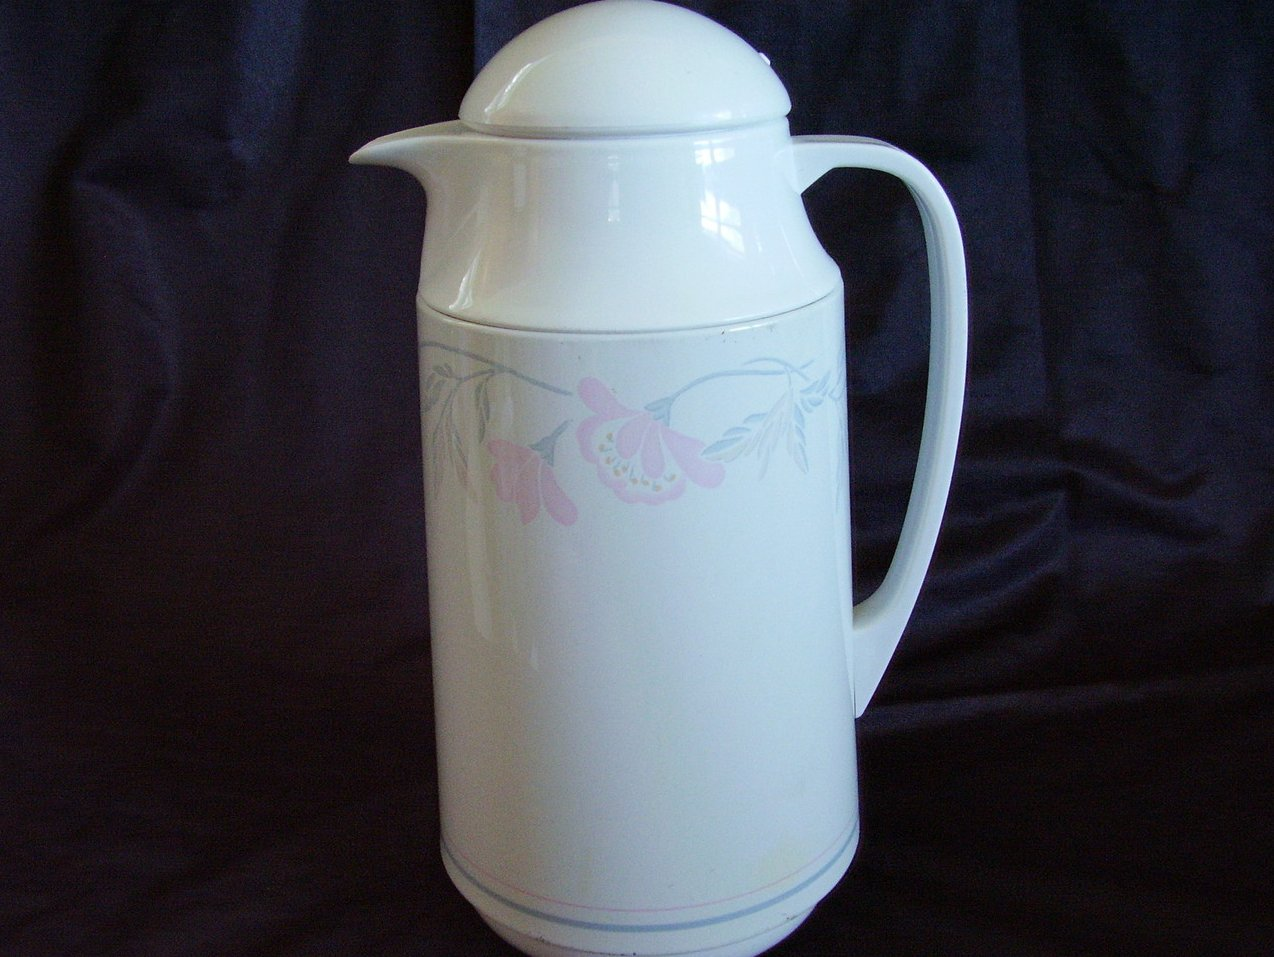 '.Corelle insulated carafe.'